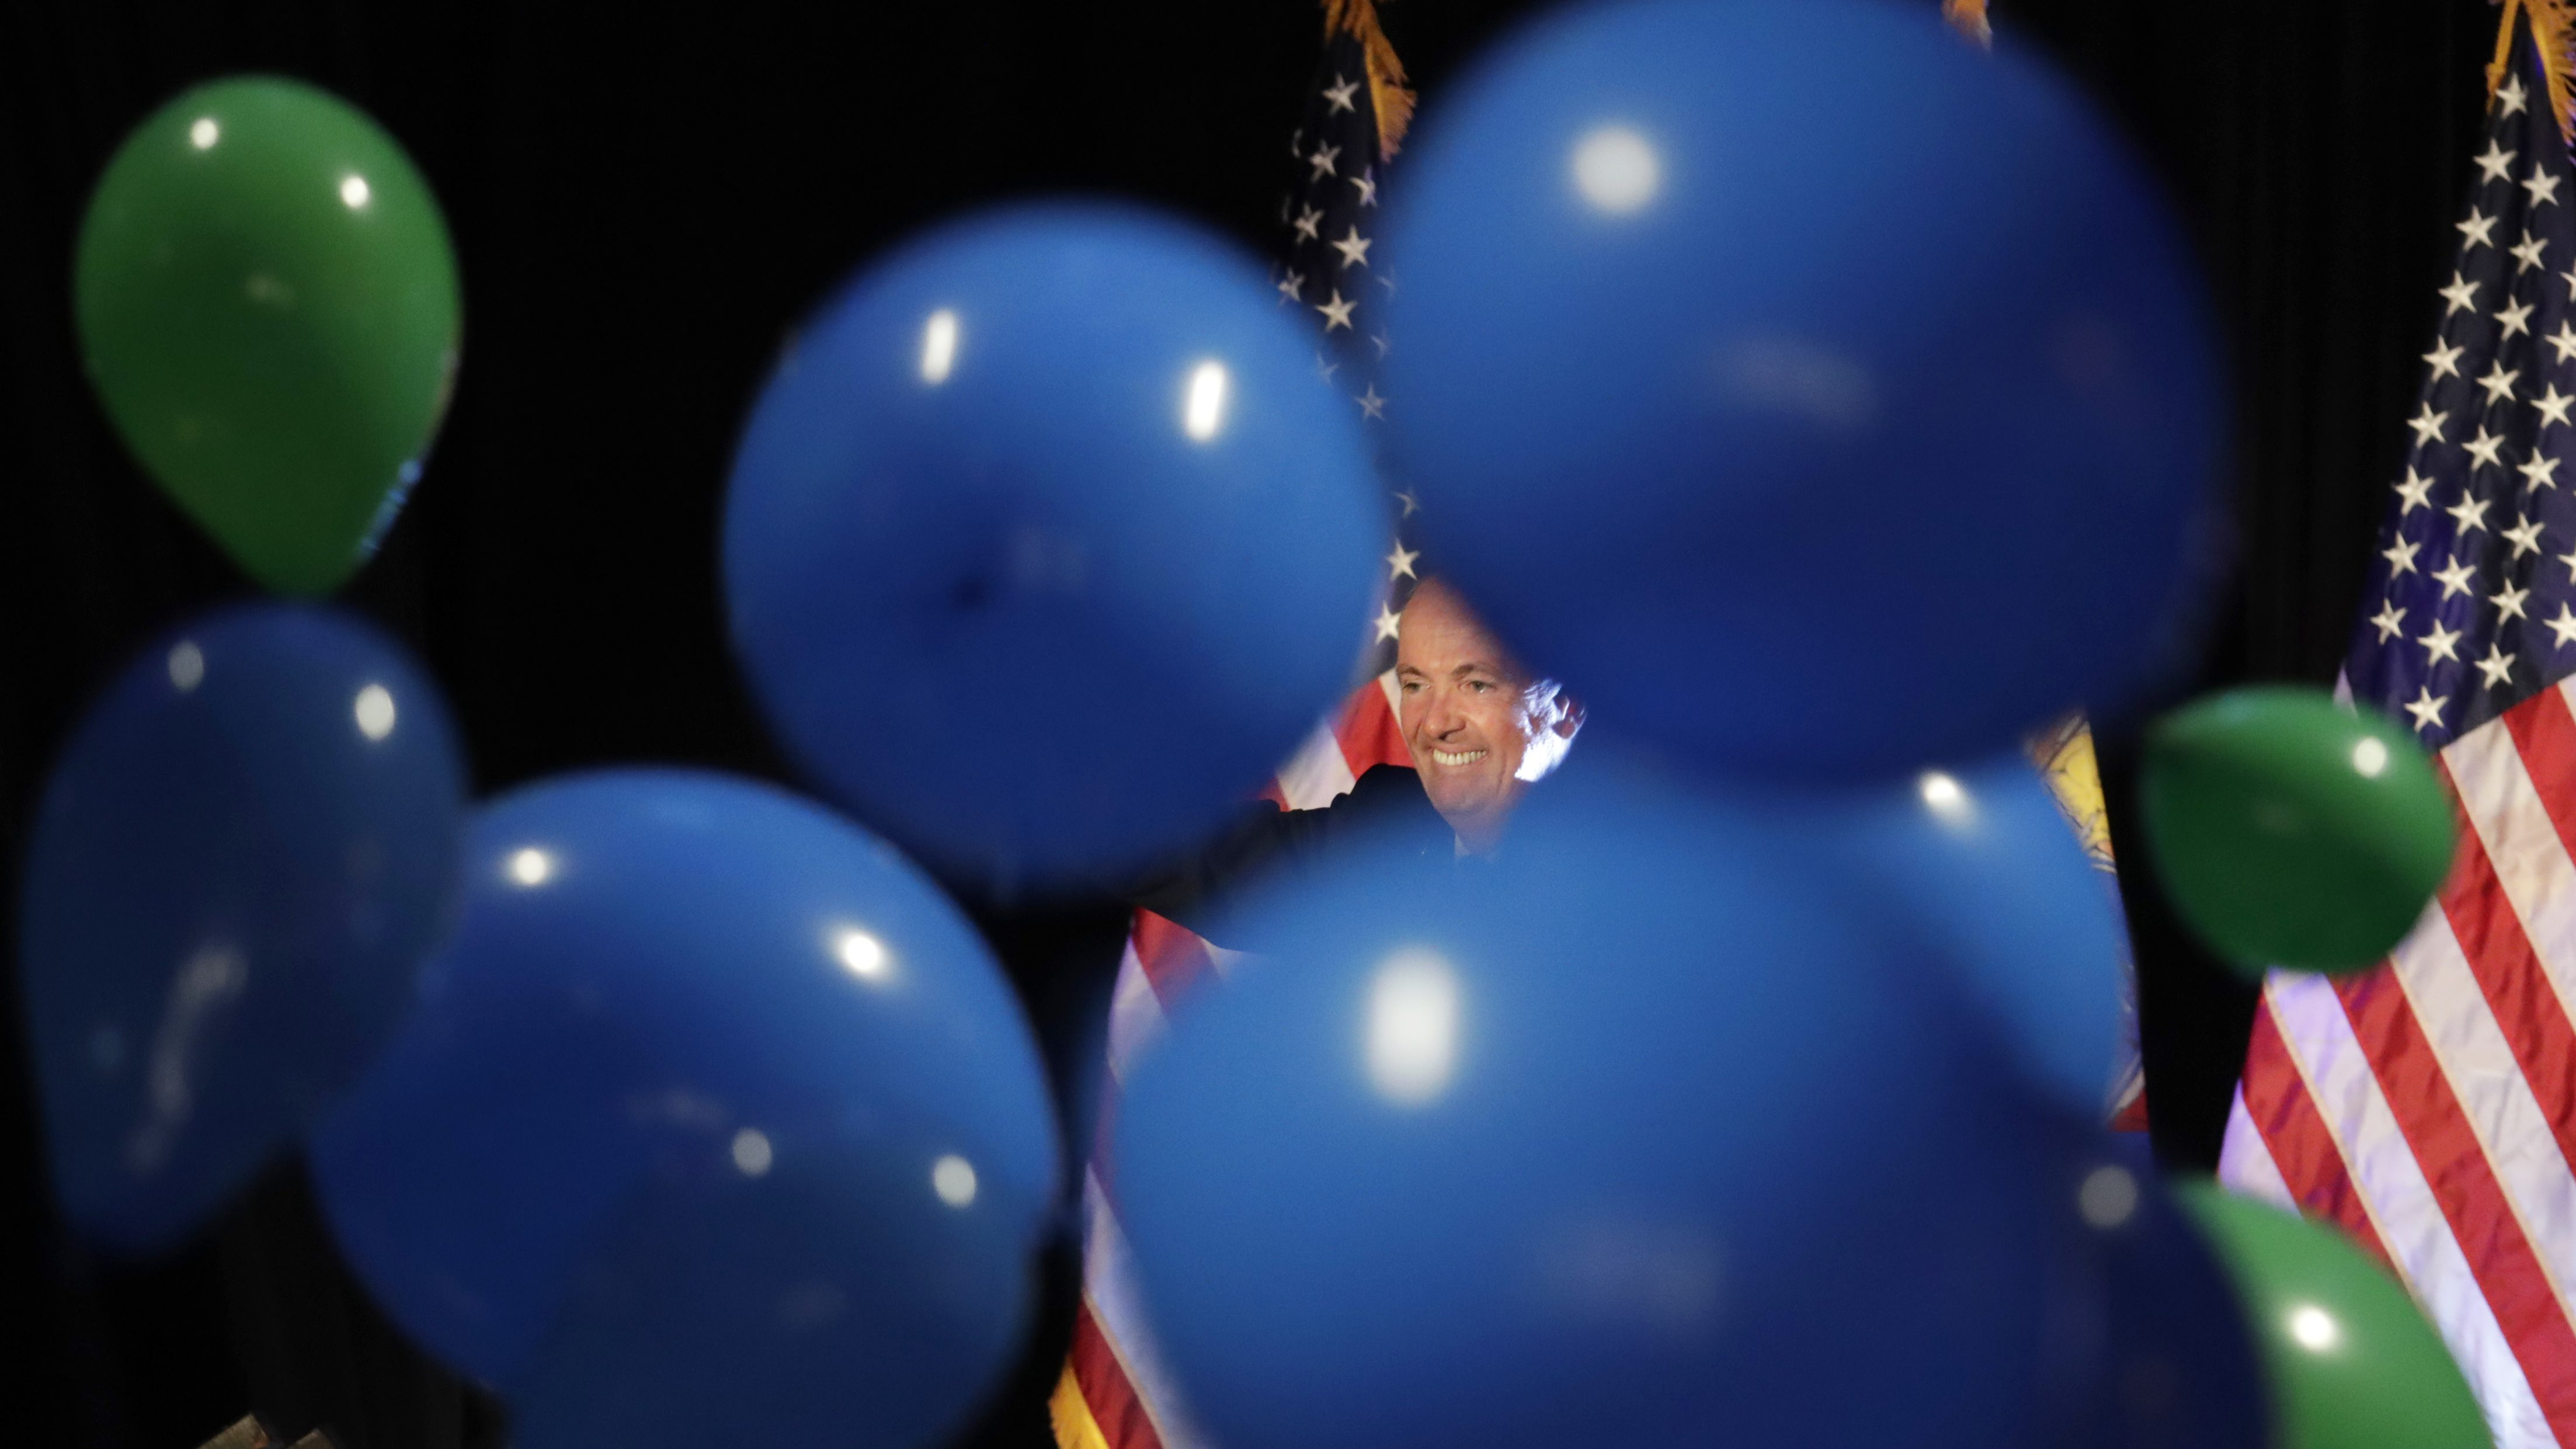 Baloons and the US flag,